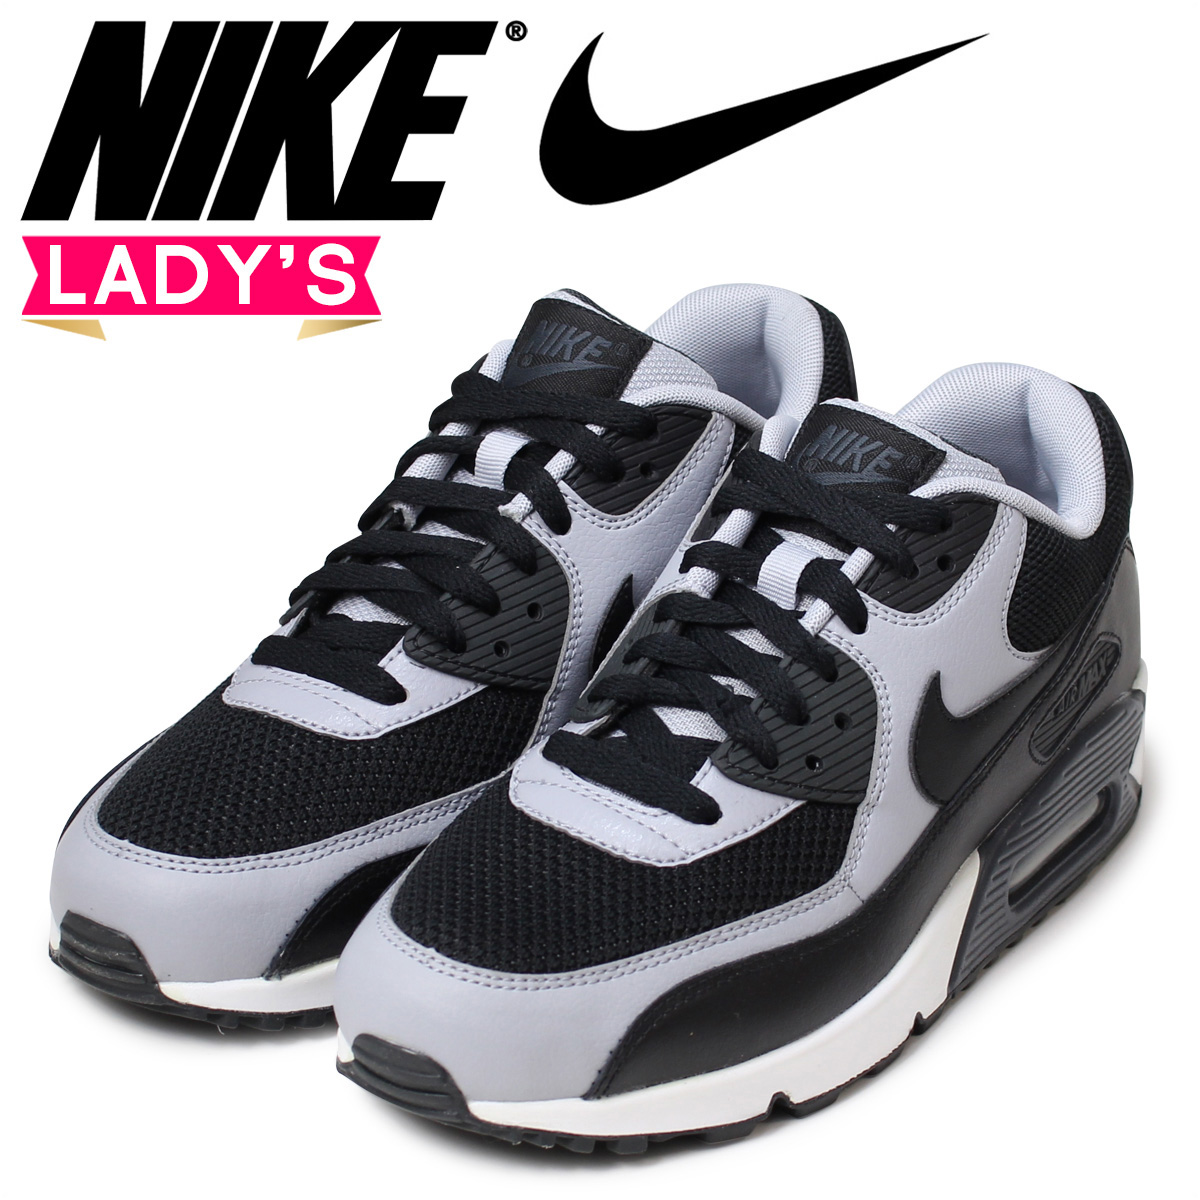 premium selection 0d039 b8b9a ... france nike nike air max ladys sneakers wmns air max essential 537384  053 shoes black the